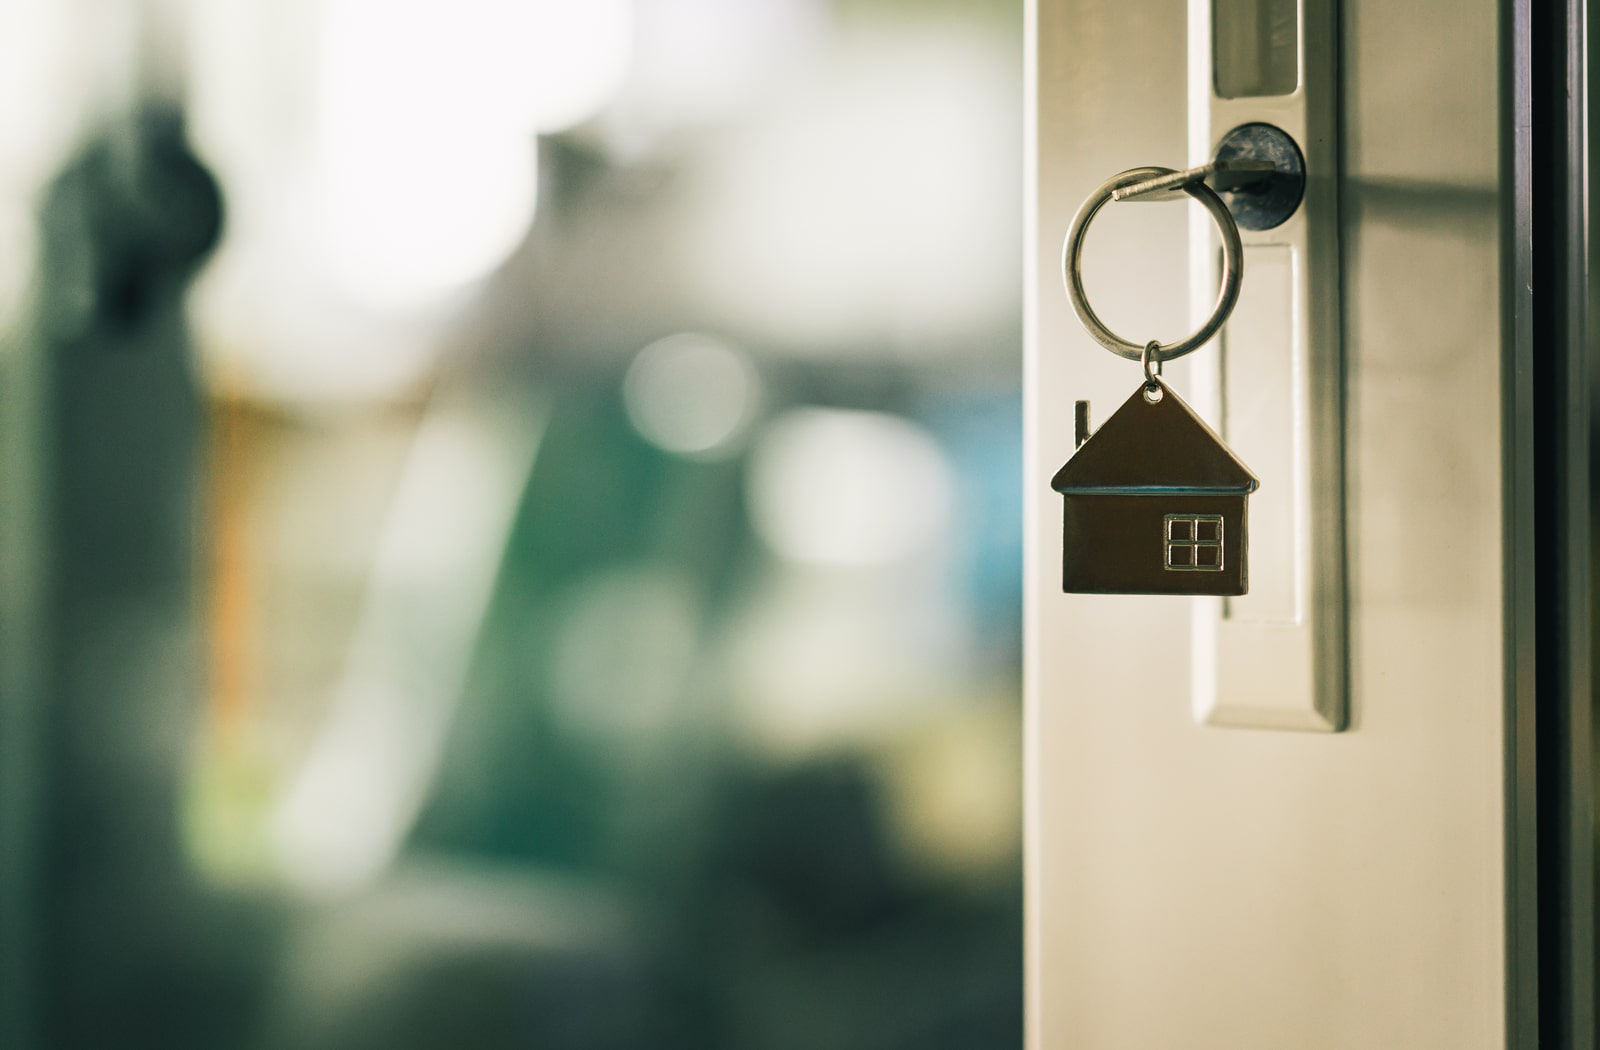 Key on a house-shaped key chain hanging in the open door of a newly mortgaged home